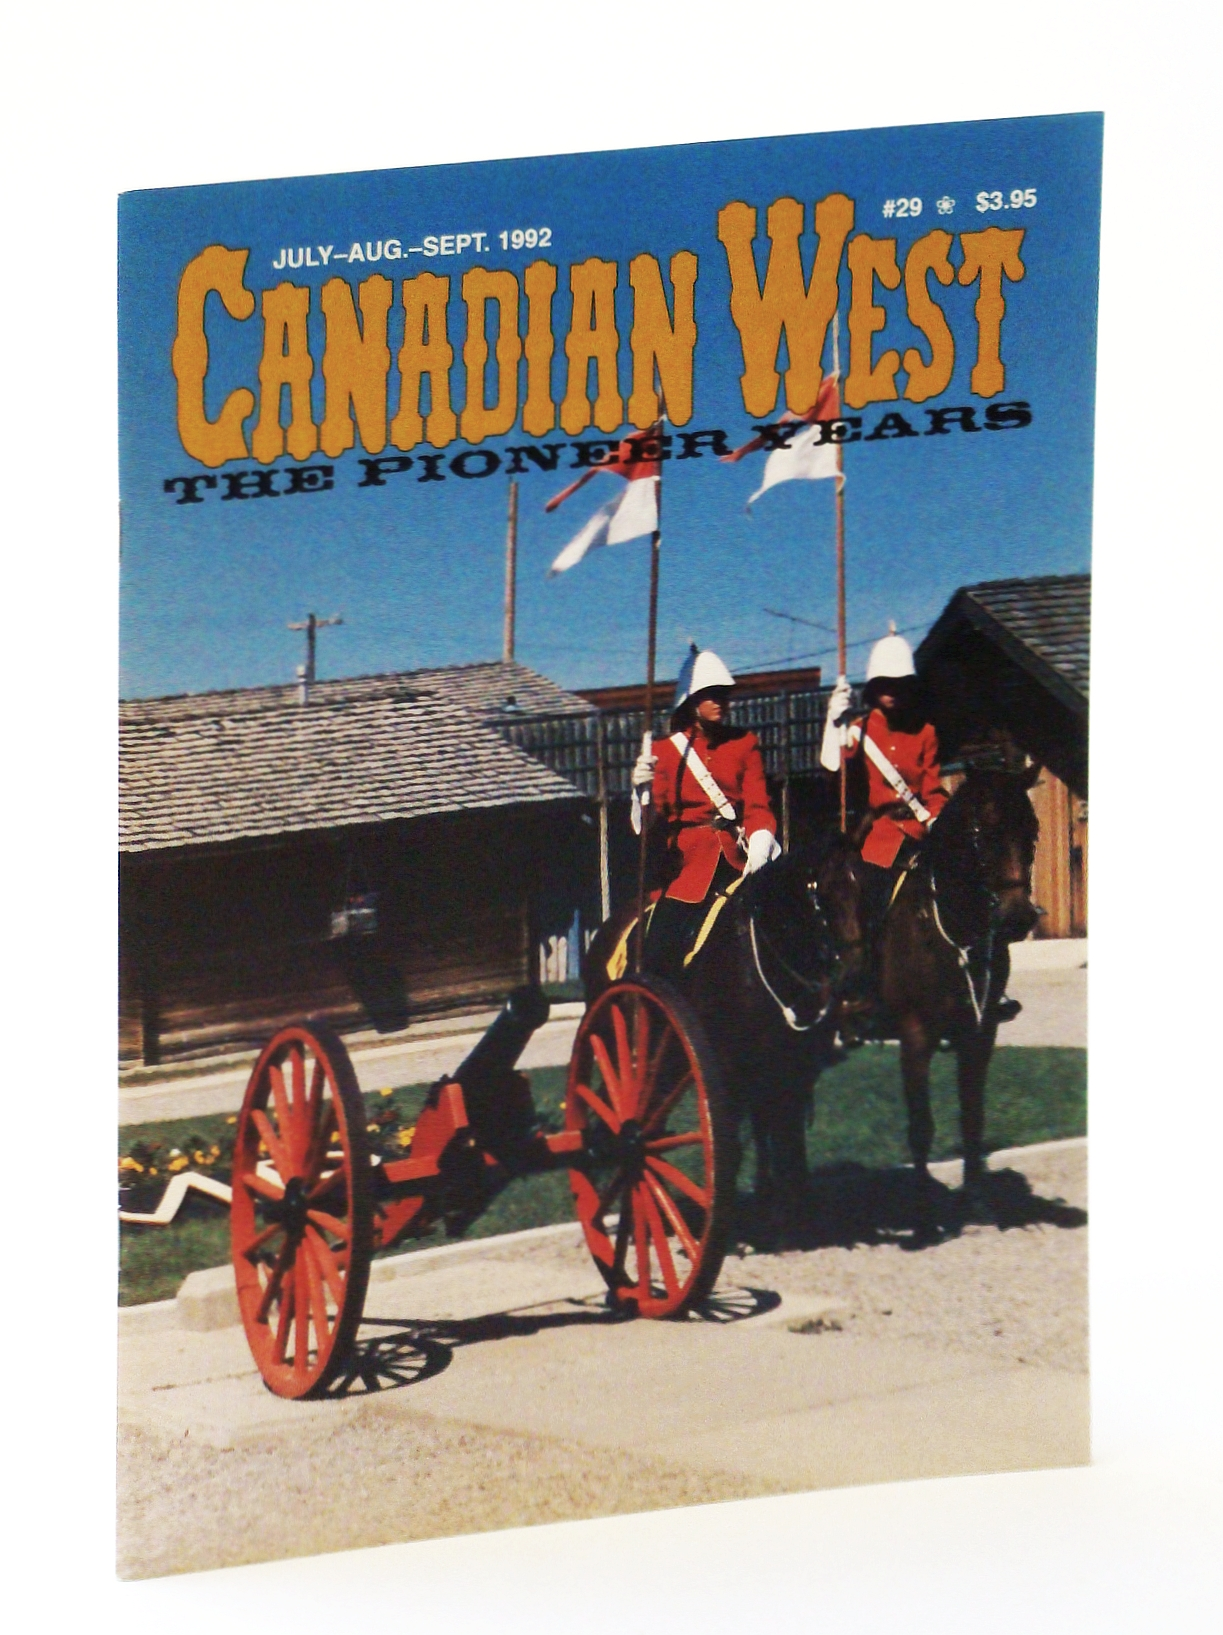 Image for Canadian West Magazine - The Pioneer Years: July/August (Aug.) /September (Sept.) 1992,  Vol. 8, No. 3 (Collector's #29)